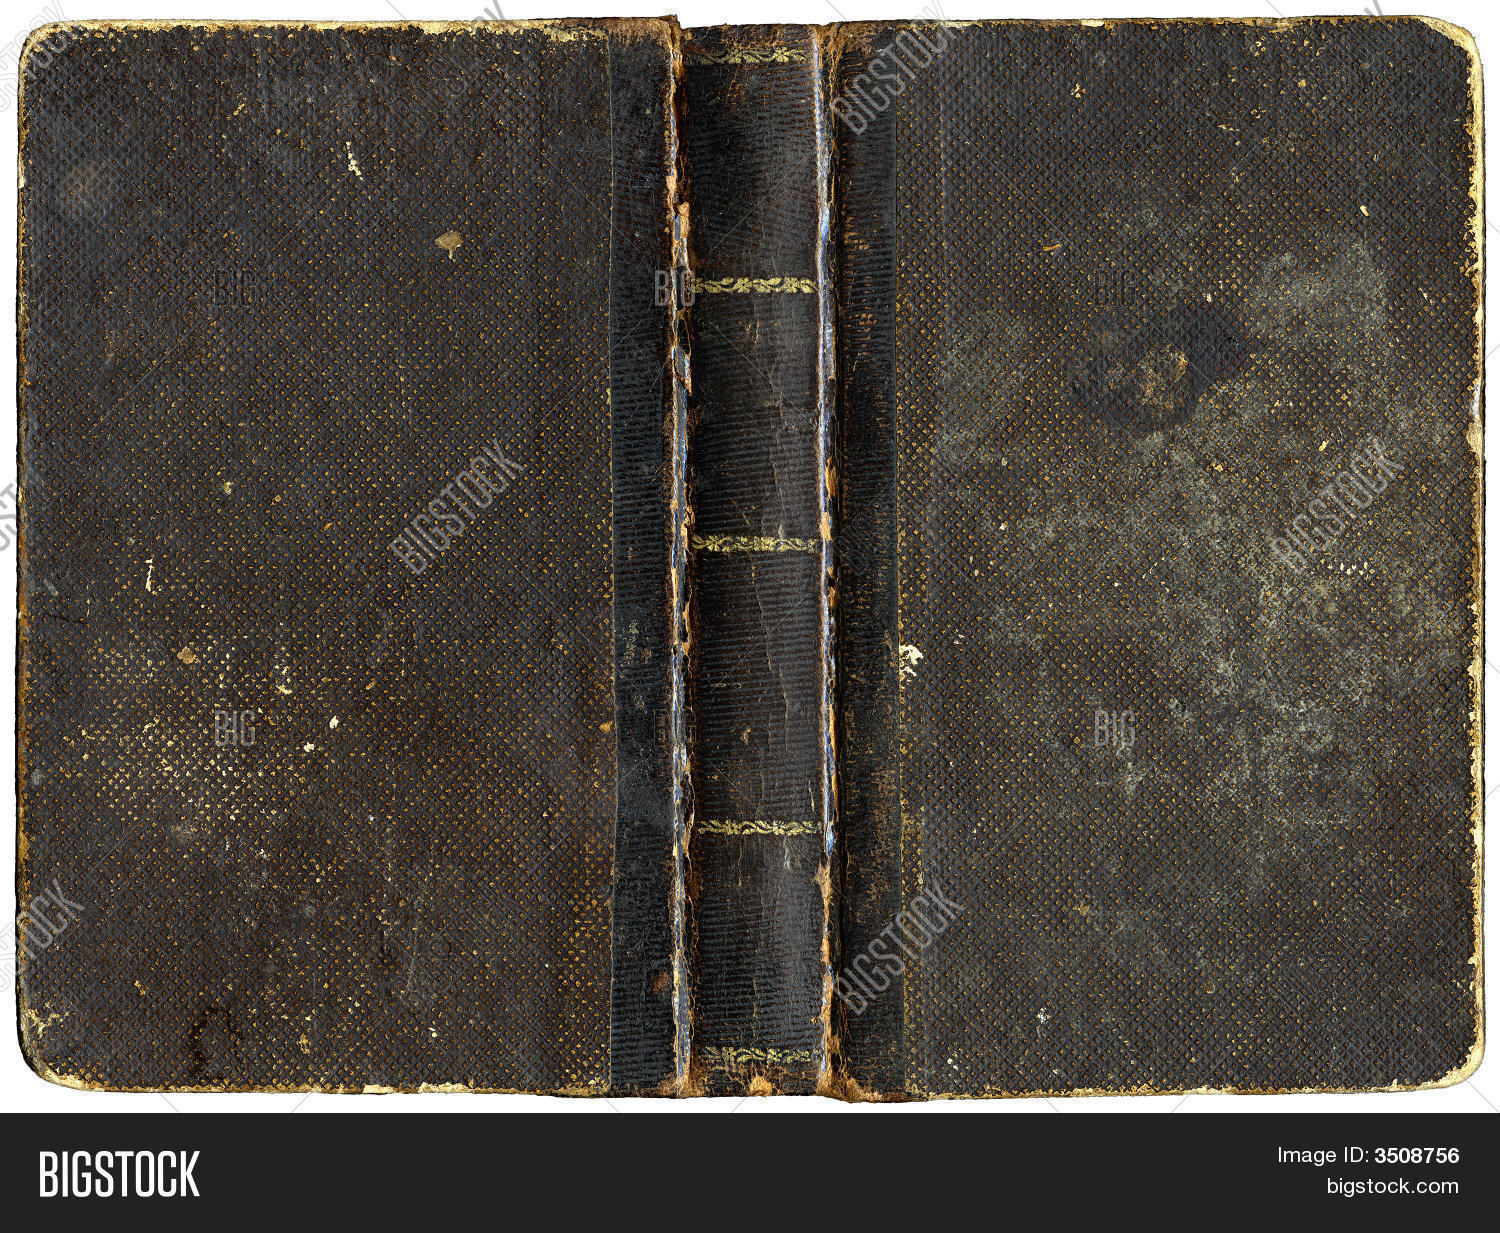 How To Make A Vintage Book Cover ~ Old book cover stock photo images bigstock